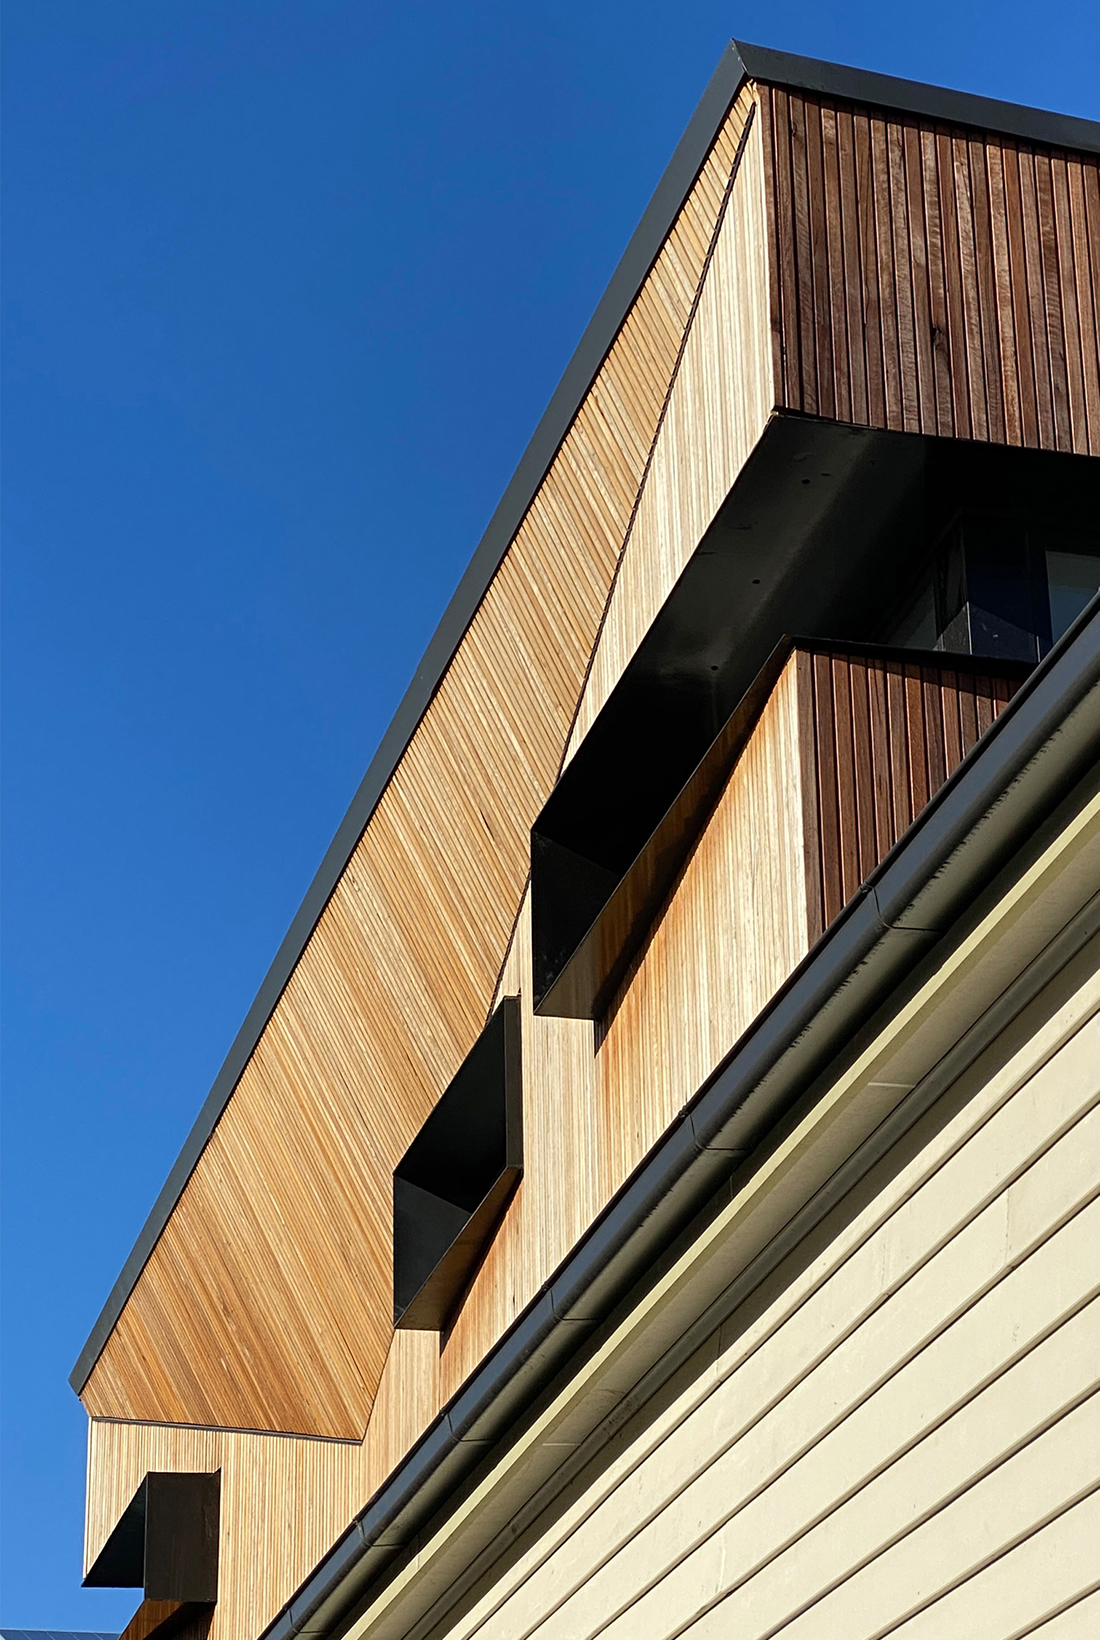 contemporary timber batten extension to traditional weatherboard victorian home